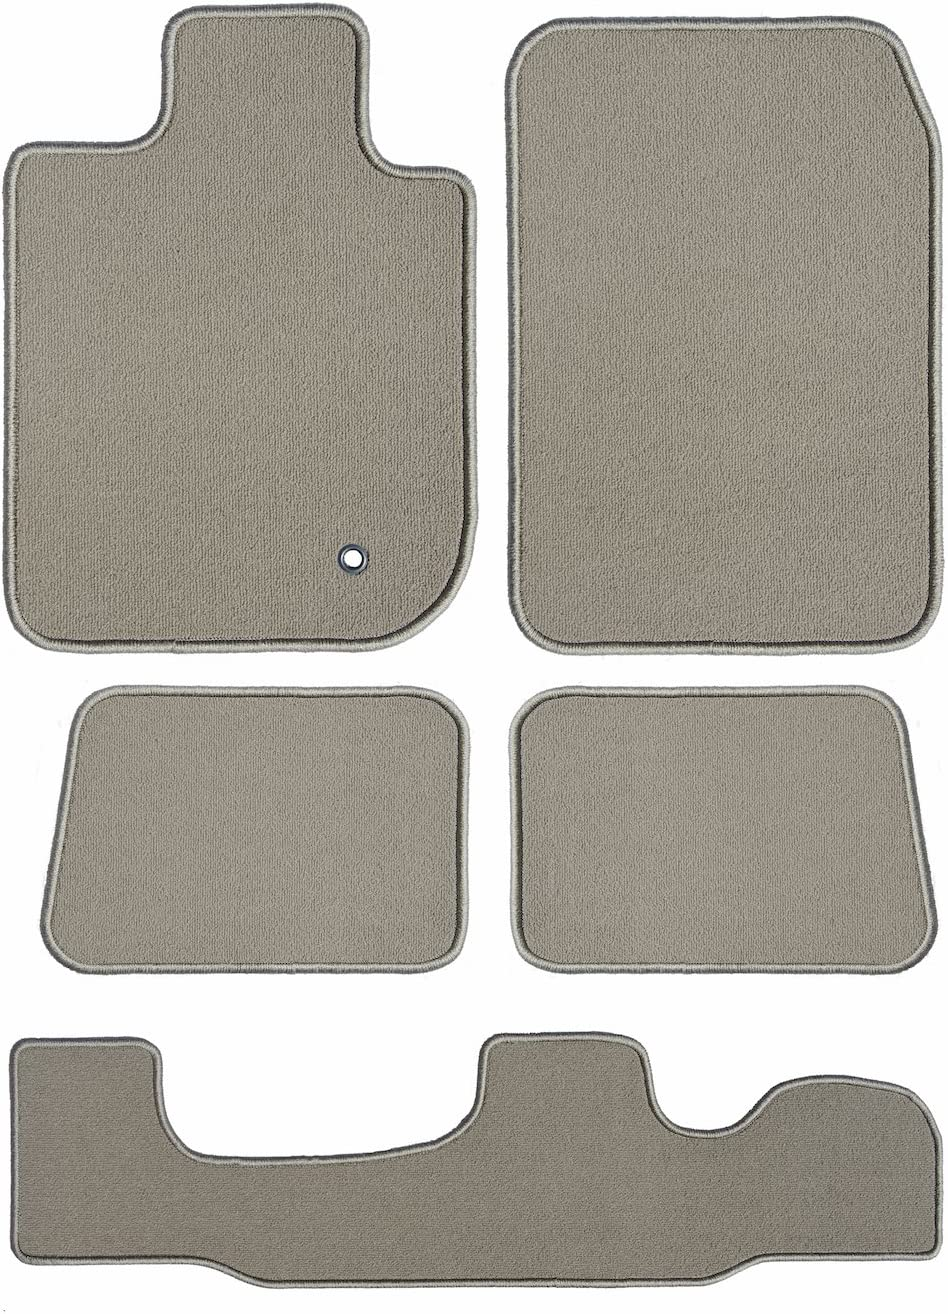 GGBAILEY Beige Loop Driver Passenger 2nd and 3rd Row Floor Mats Custom-Fit for Chrysler Pacifica Hybrid 2019-2019